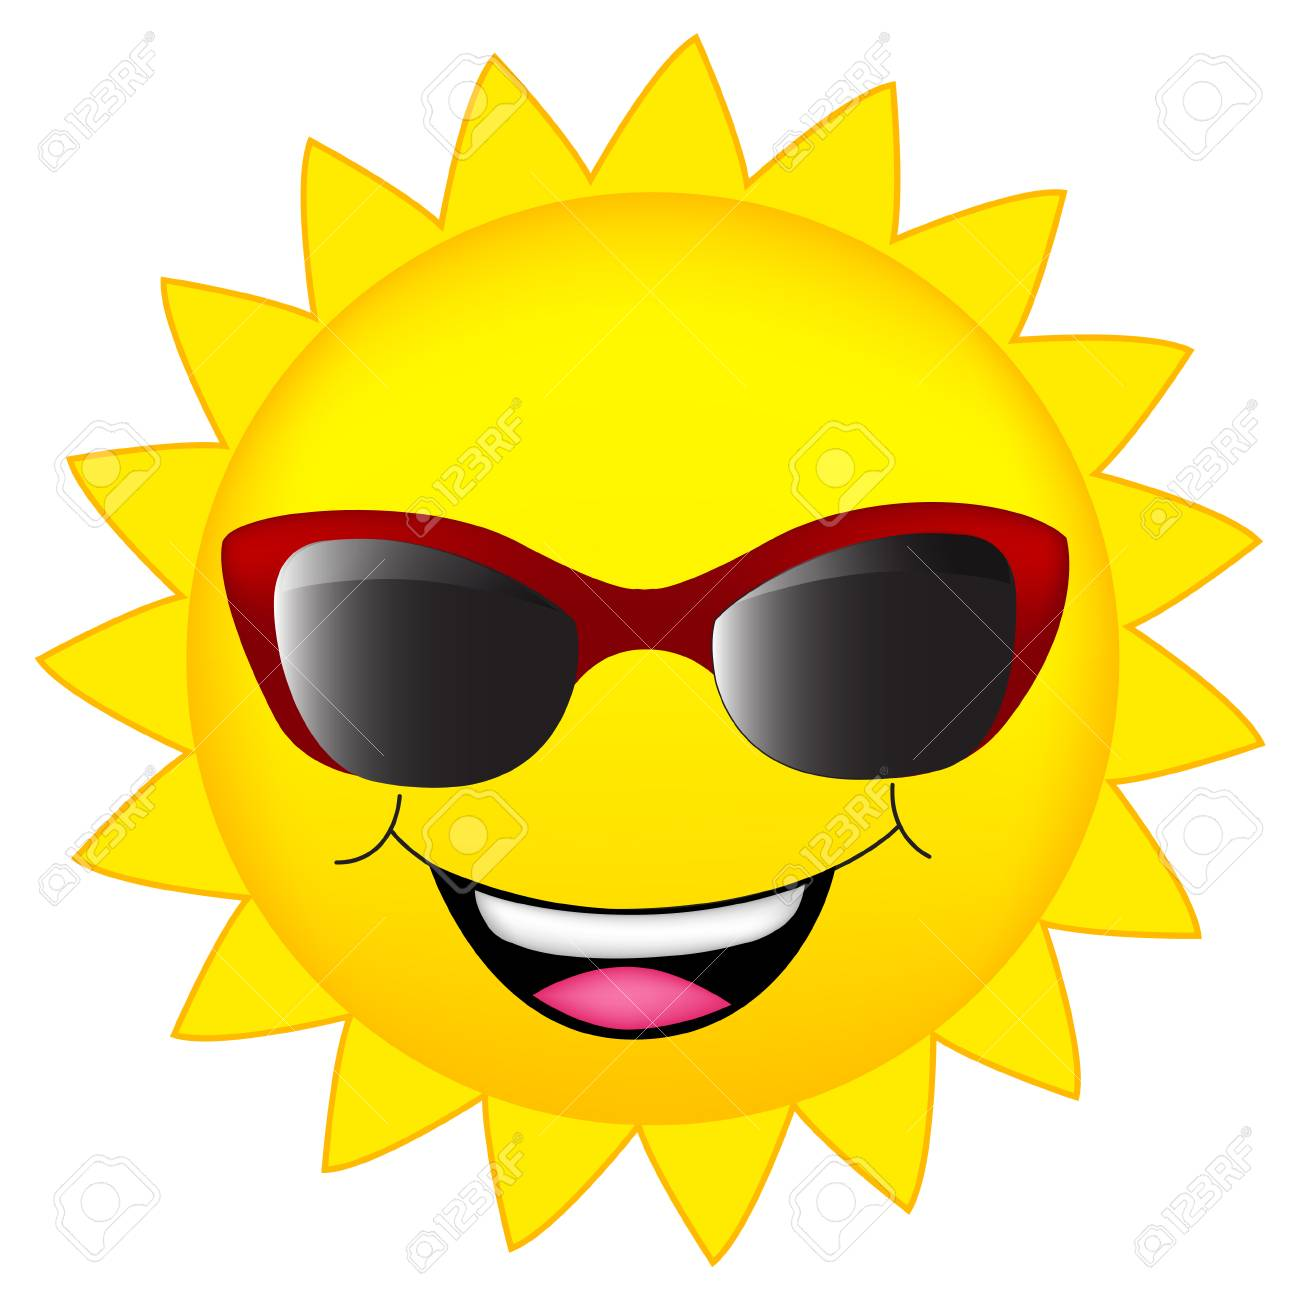 happy sun wearing sunglasses clipart isolated on white royalty free rh 123rf com  happy sun clipart free